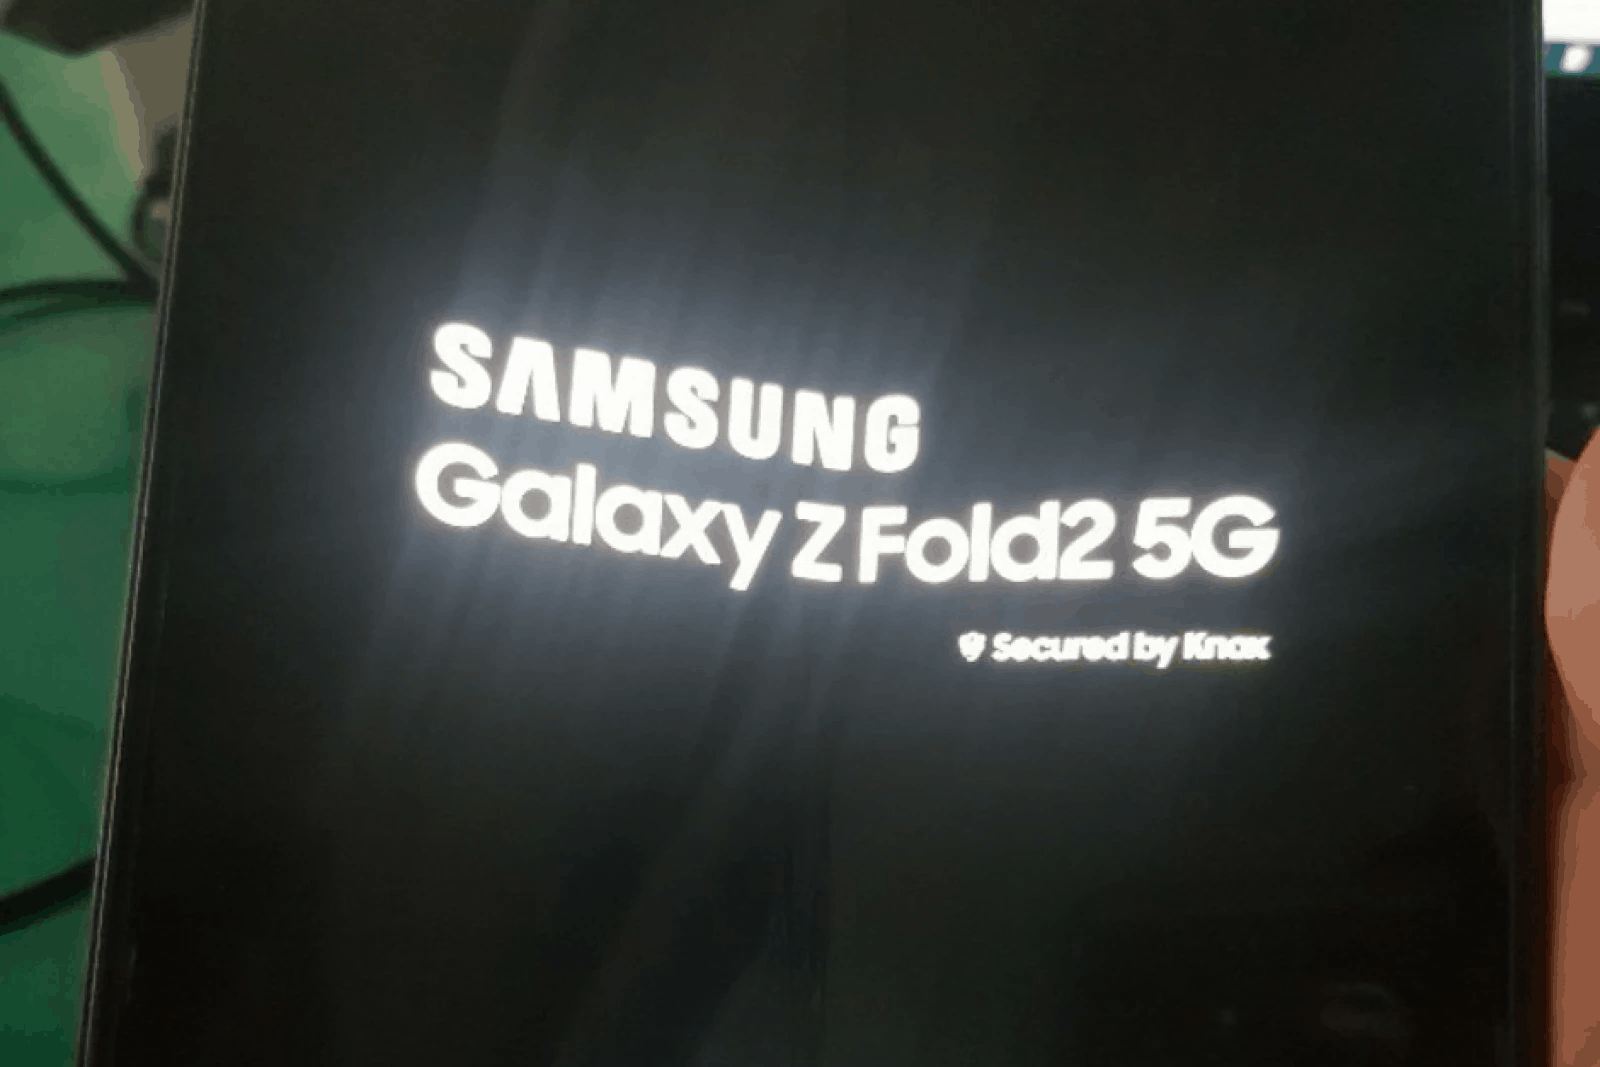 Check out the one and only Samsung Galaxy Z Fold 2 5G in the flesh